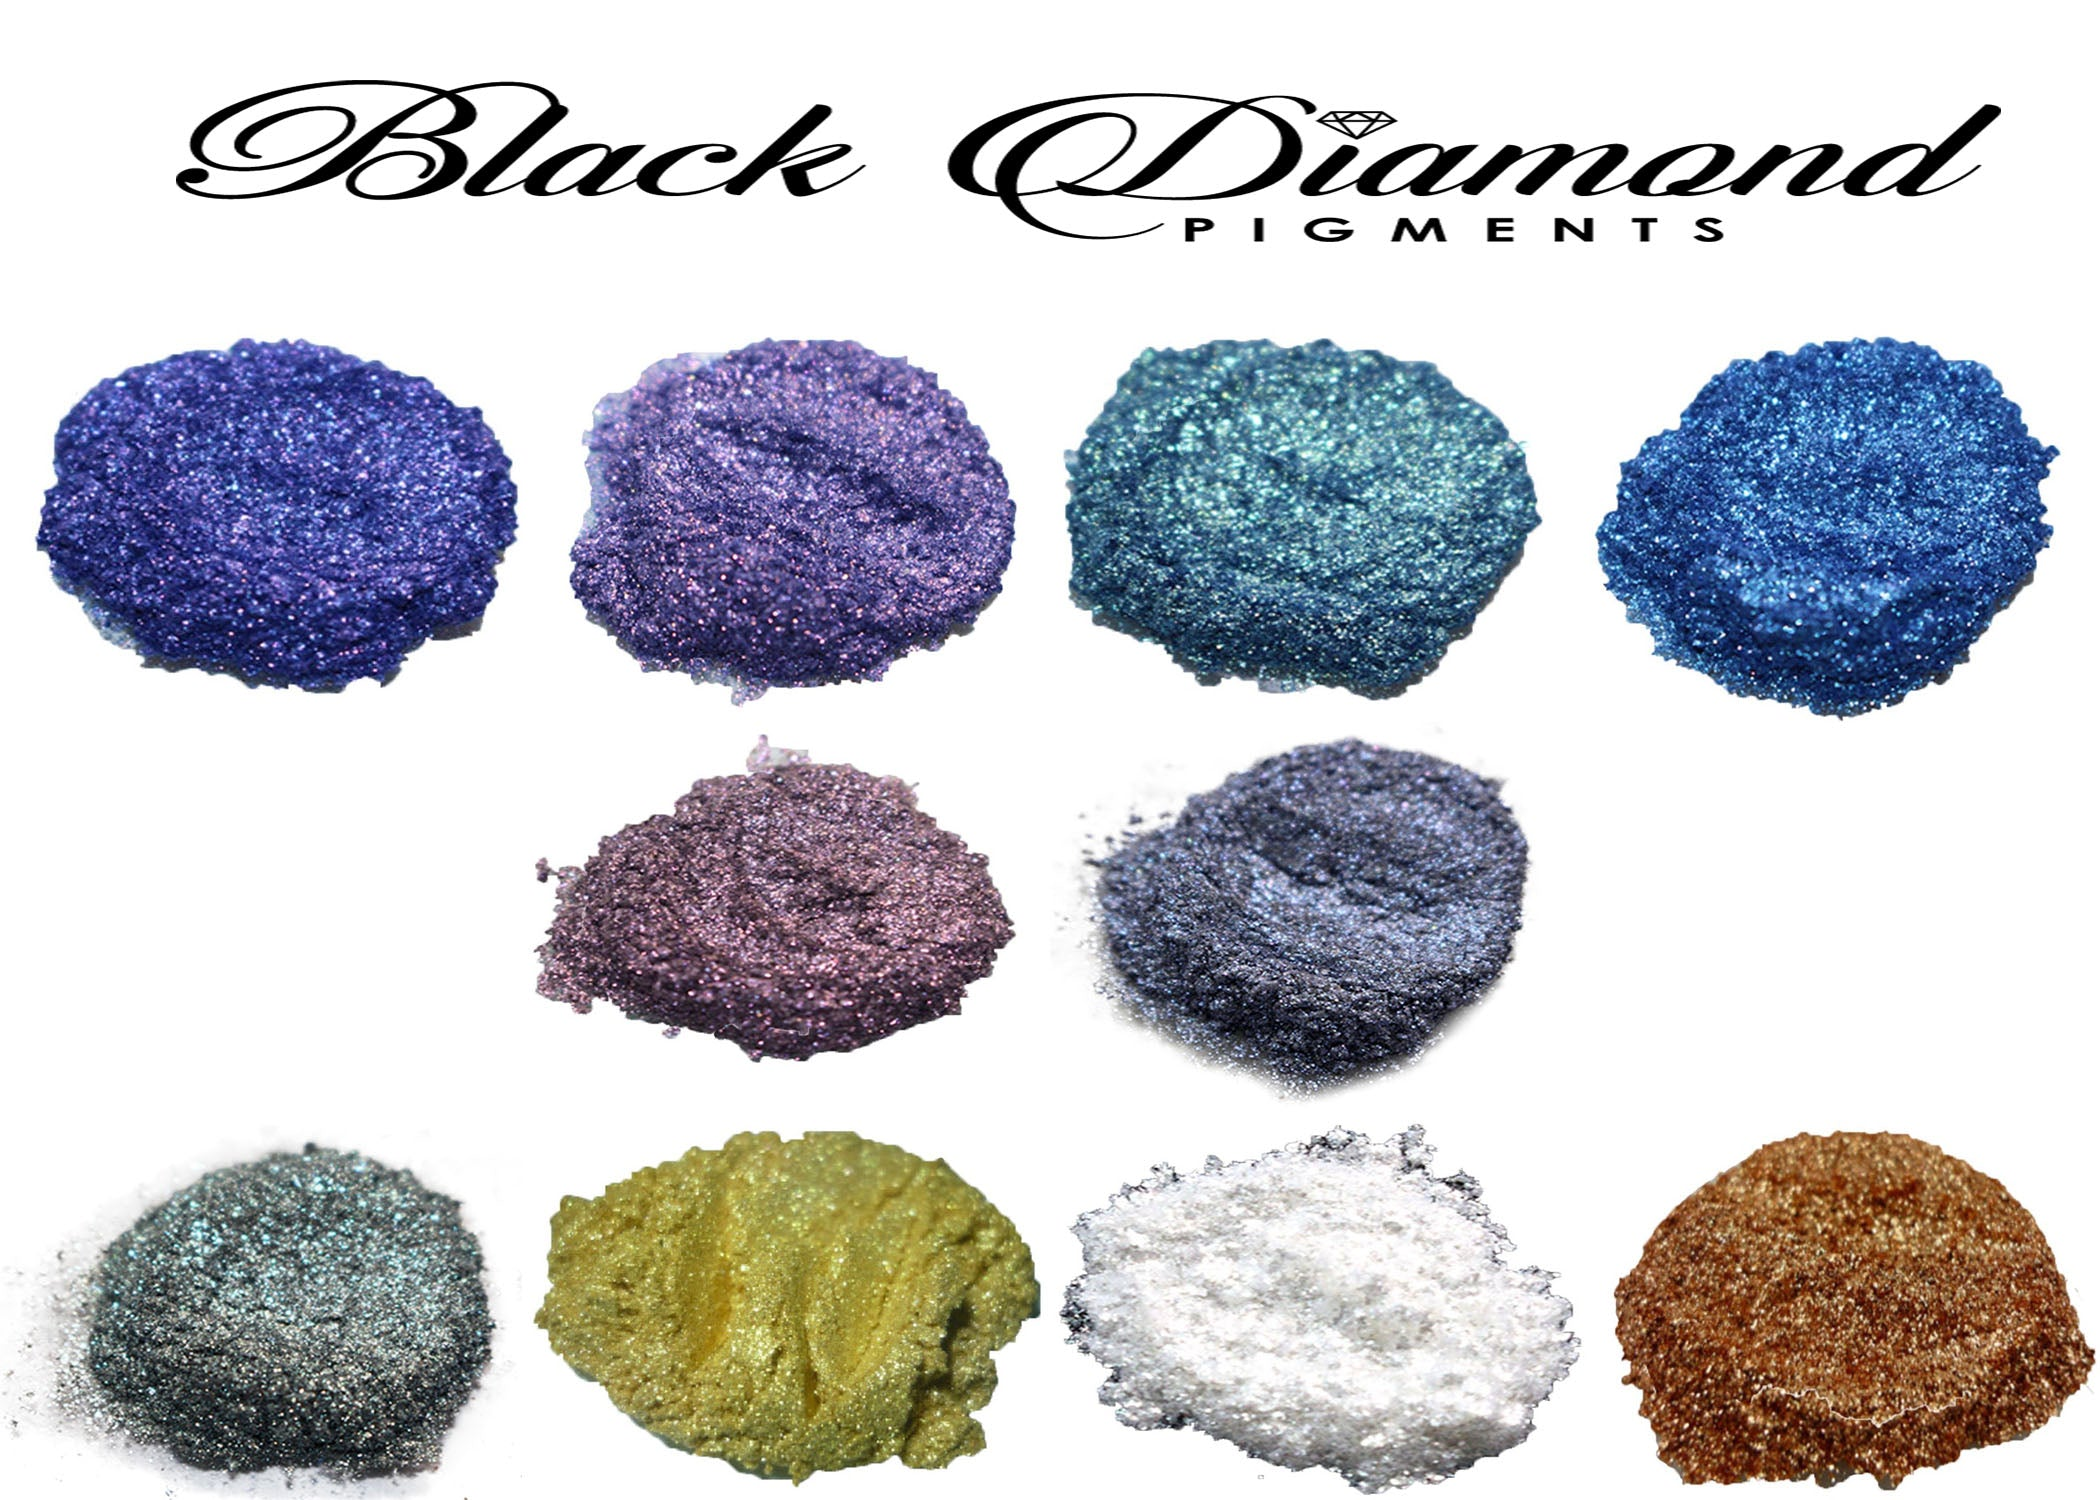 VARIETY PACK 10 (10 COLORS) mica powder pigment variety packs  Black Diamond Pigments® - Black Diamond Pigments